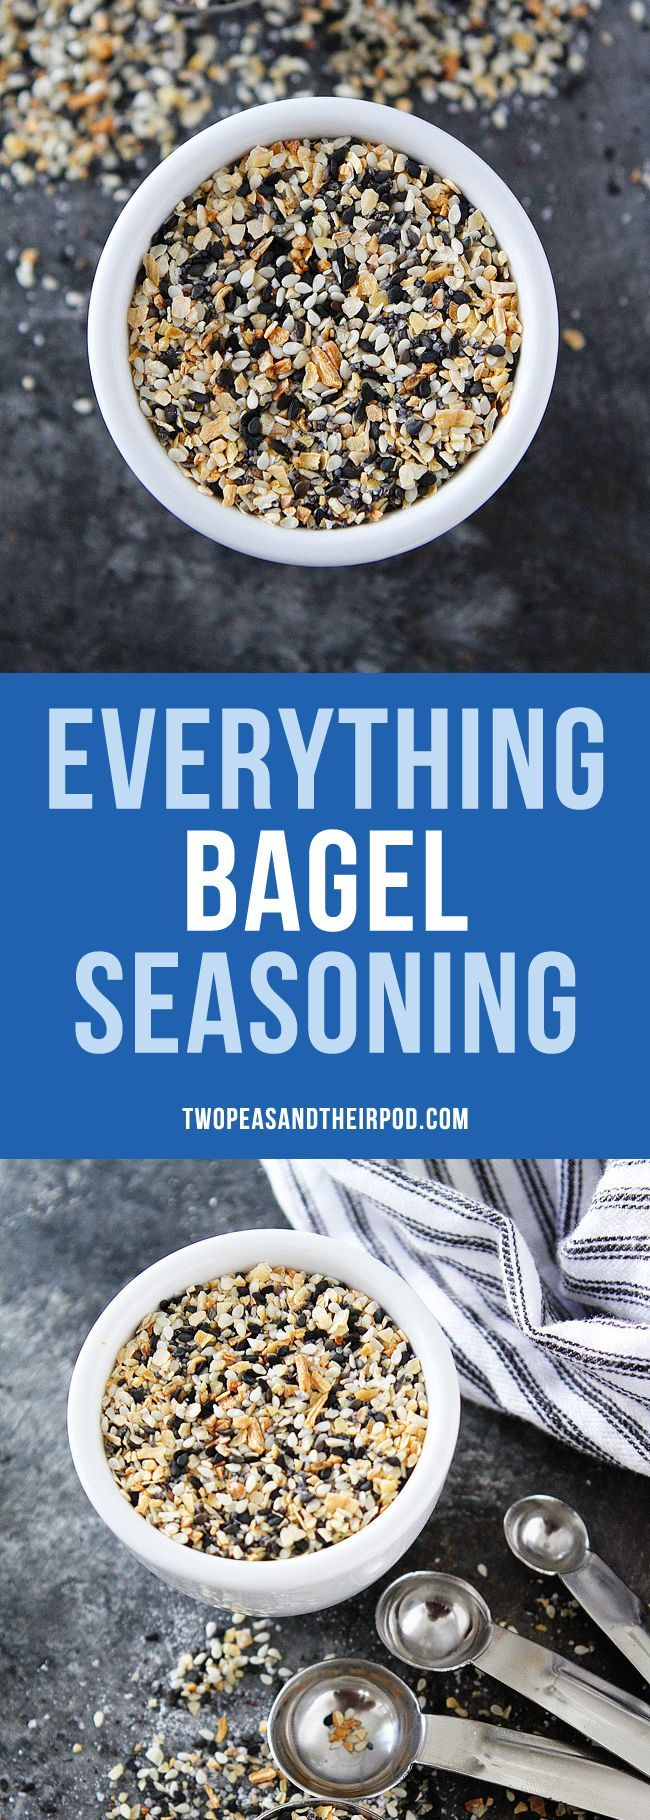 How to Make Everything Bagel Seasoning at home! You only need 5 spices and 5 minutes. If you like Trader Joe's famous seasoning, you will LOVE this easy recipe! #diy